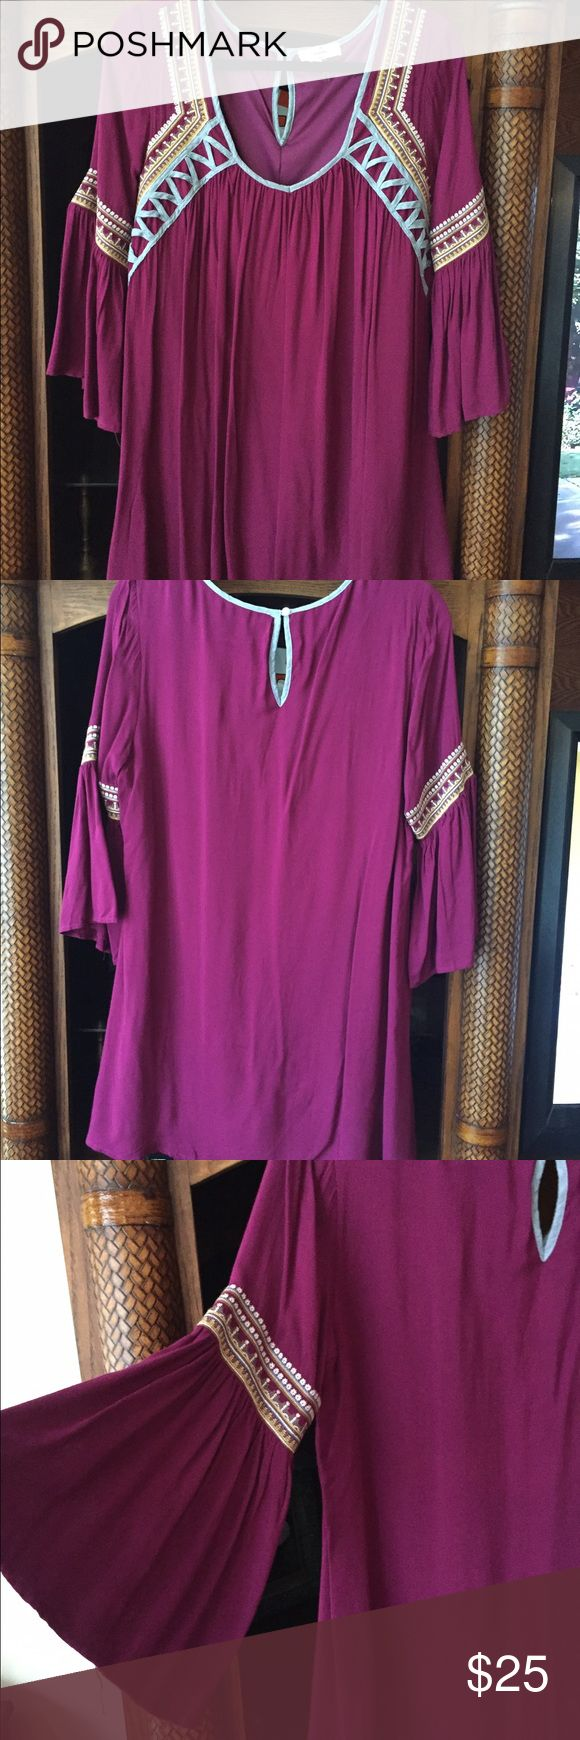 Entro hobo style dress New without tags. Never worn. Beautiful vibrant colors Entro Dresses Midi